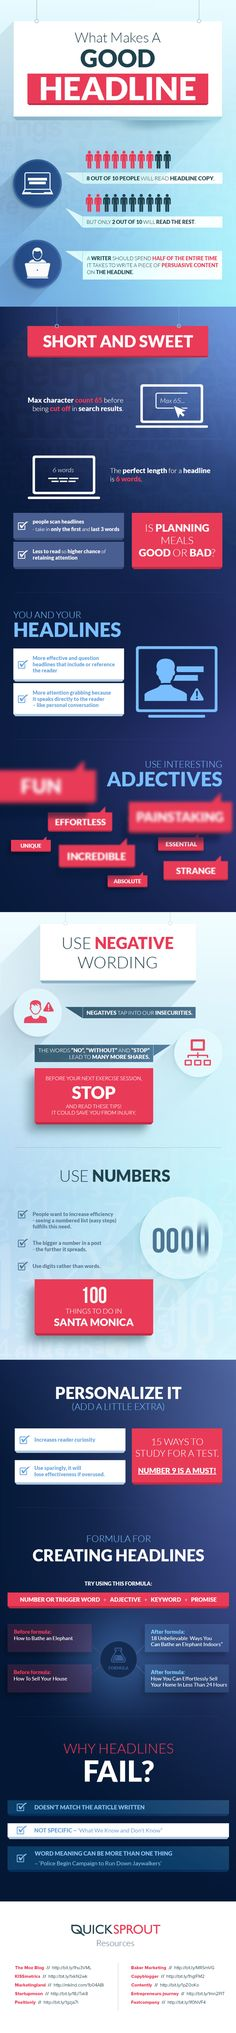 The Formula For A Perfect Headline In One Digestible Infographic Content Marketing Strategy Inbound Marketing, Marketing Trends, Content Marketing Strategy, Internet Marketing, Online Marketing, Social Media Marketing, Marketing Branding, Cool Writing, Writing Tips